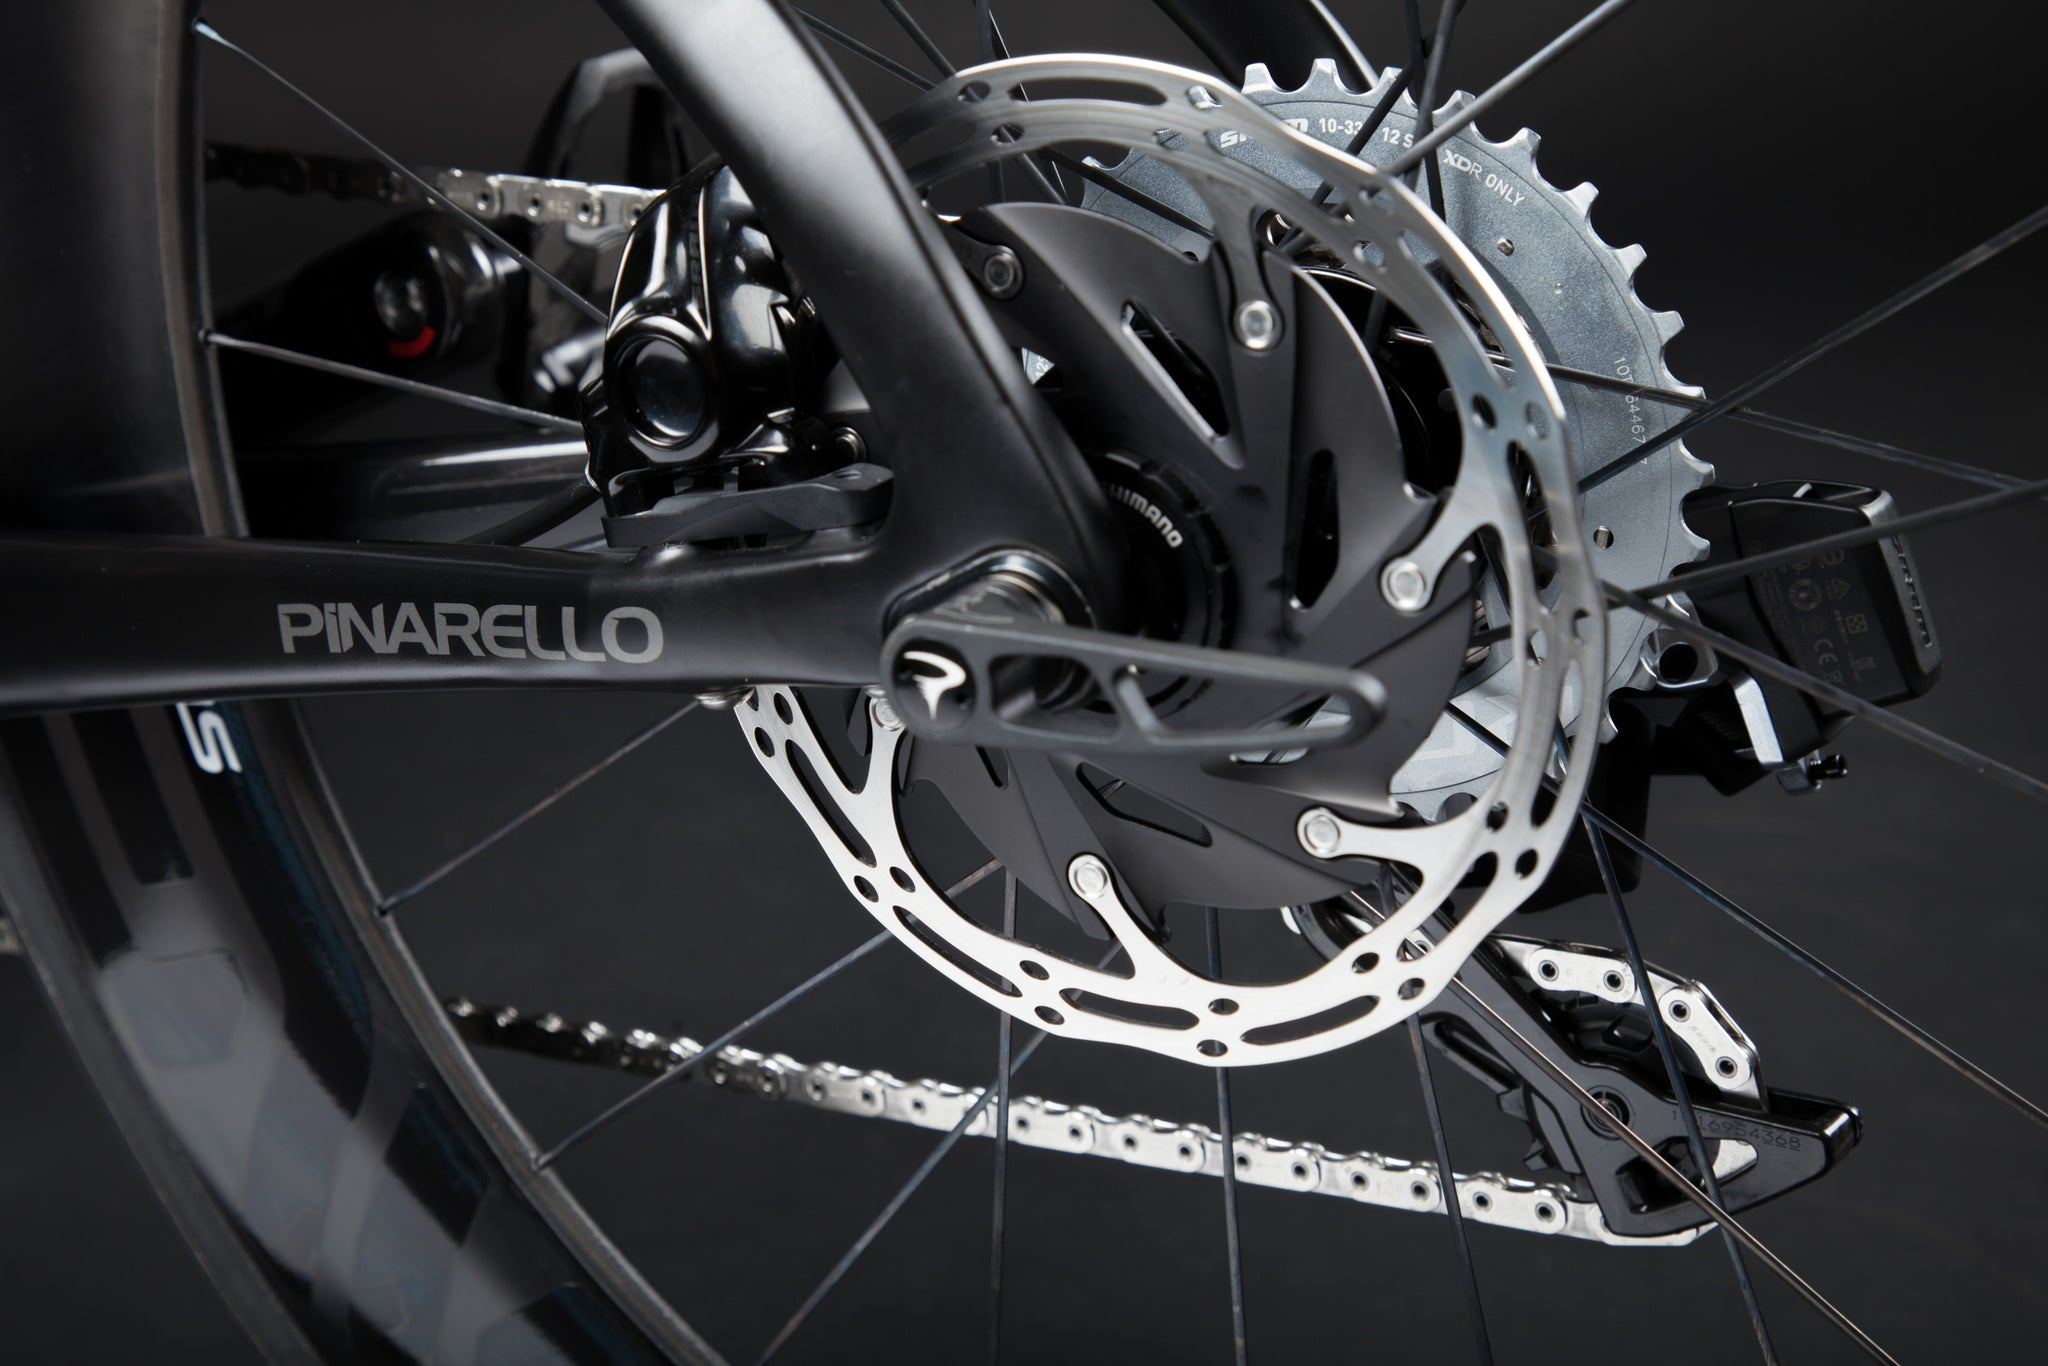 pinarello bolide brakes sram red disc